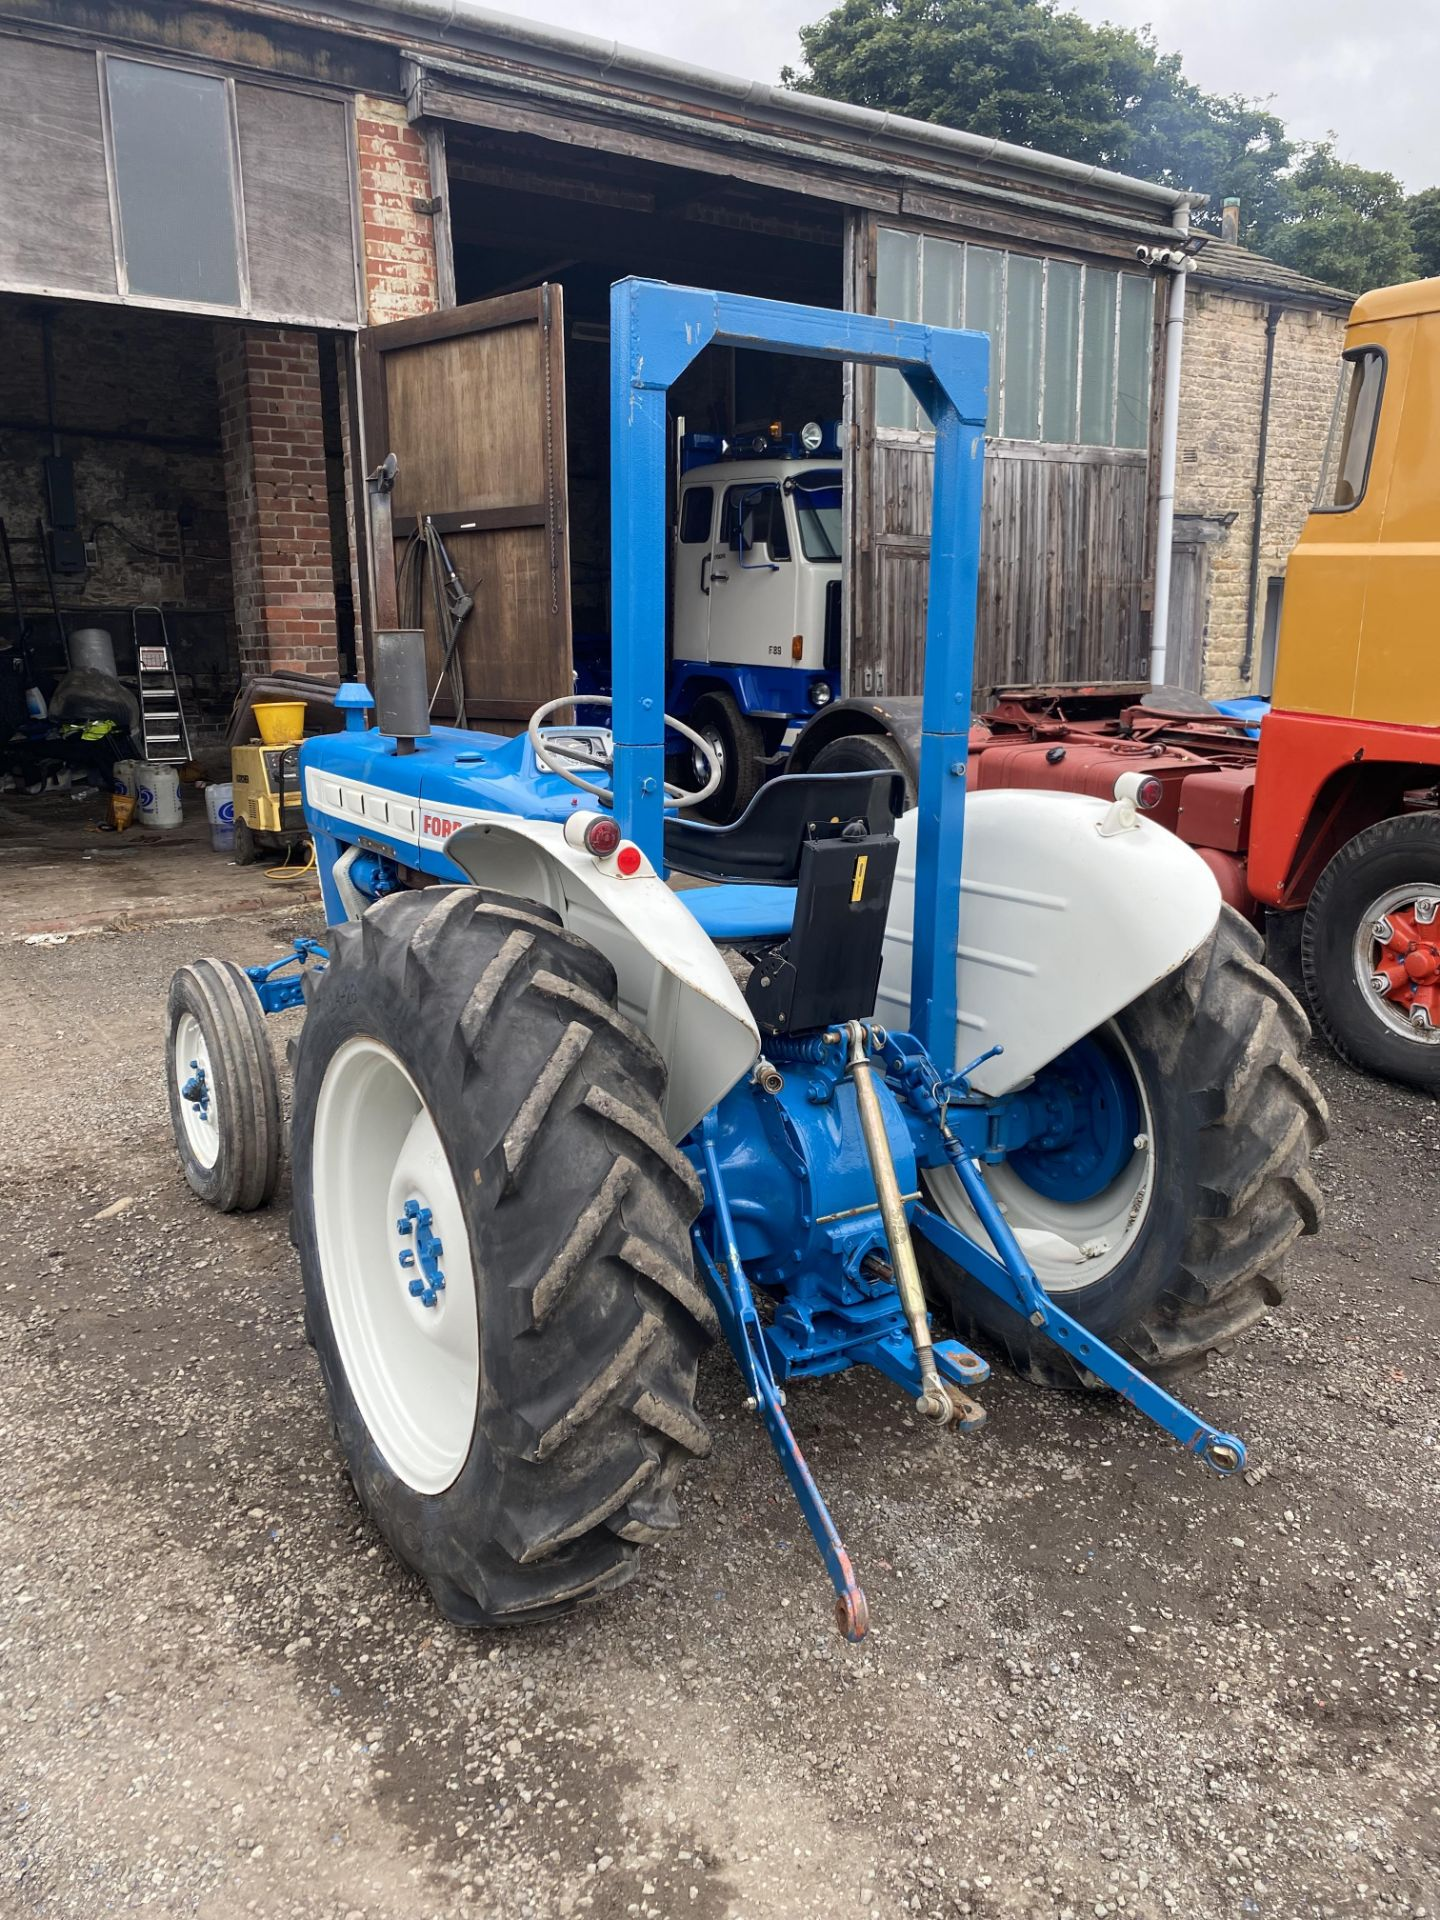 Ford 2000 Agricultural Tractor, vendors comments – nice original condition, clutch is stuck on - Image 4 of 9